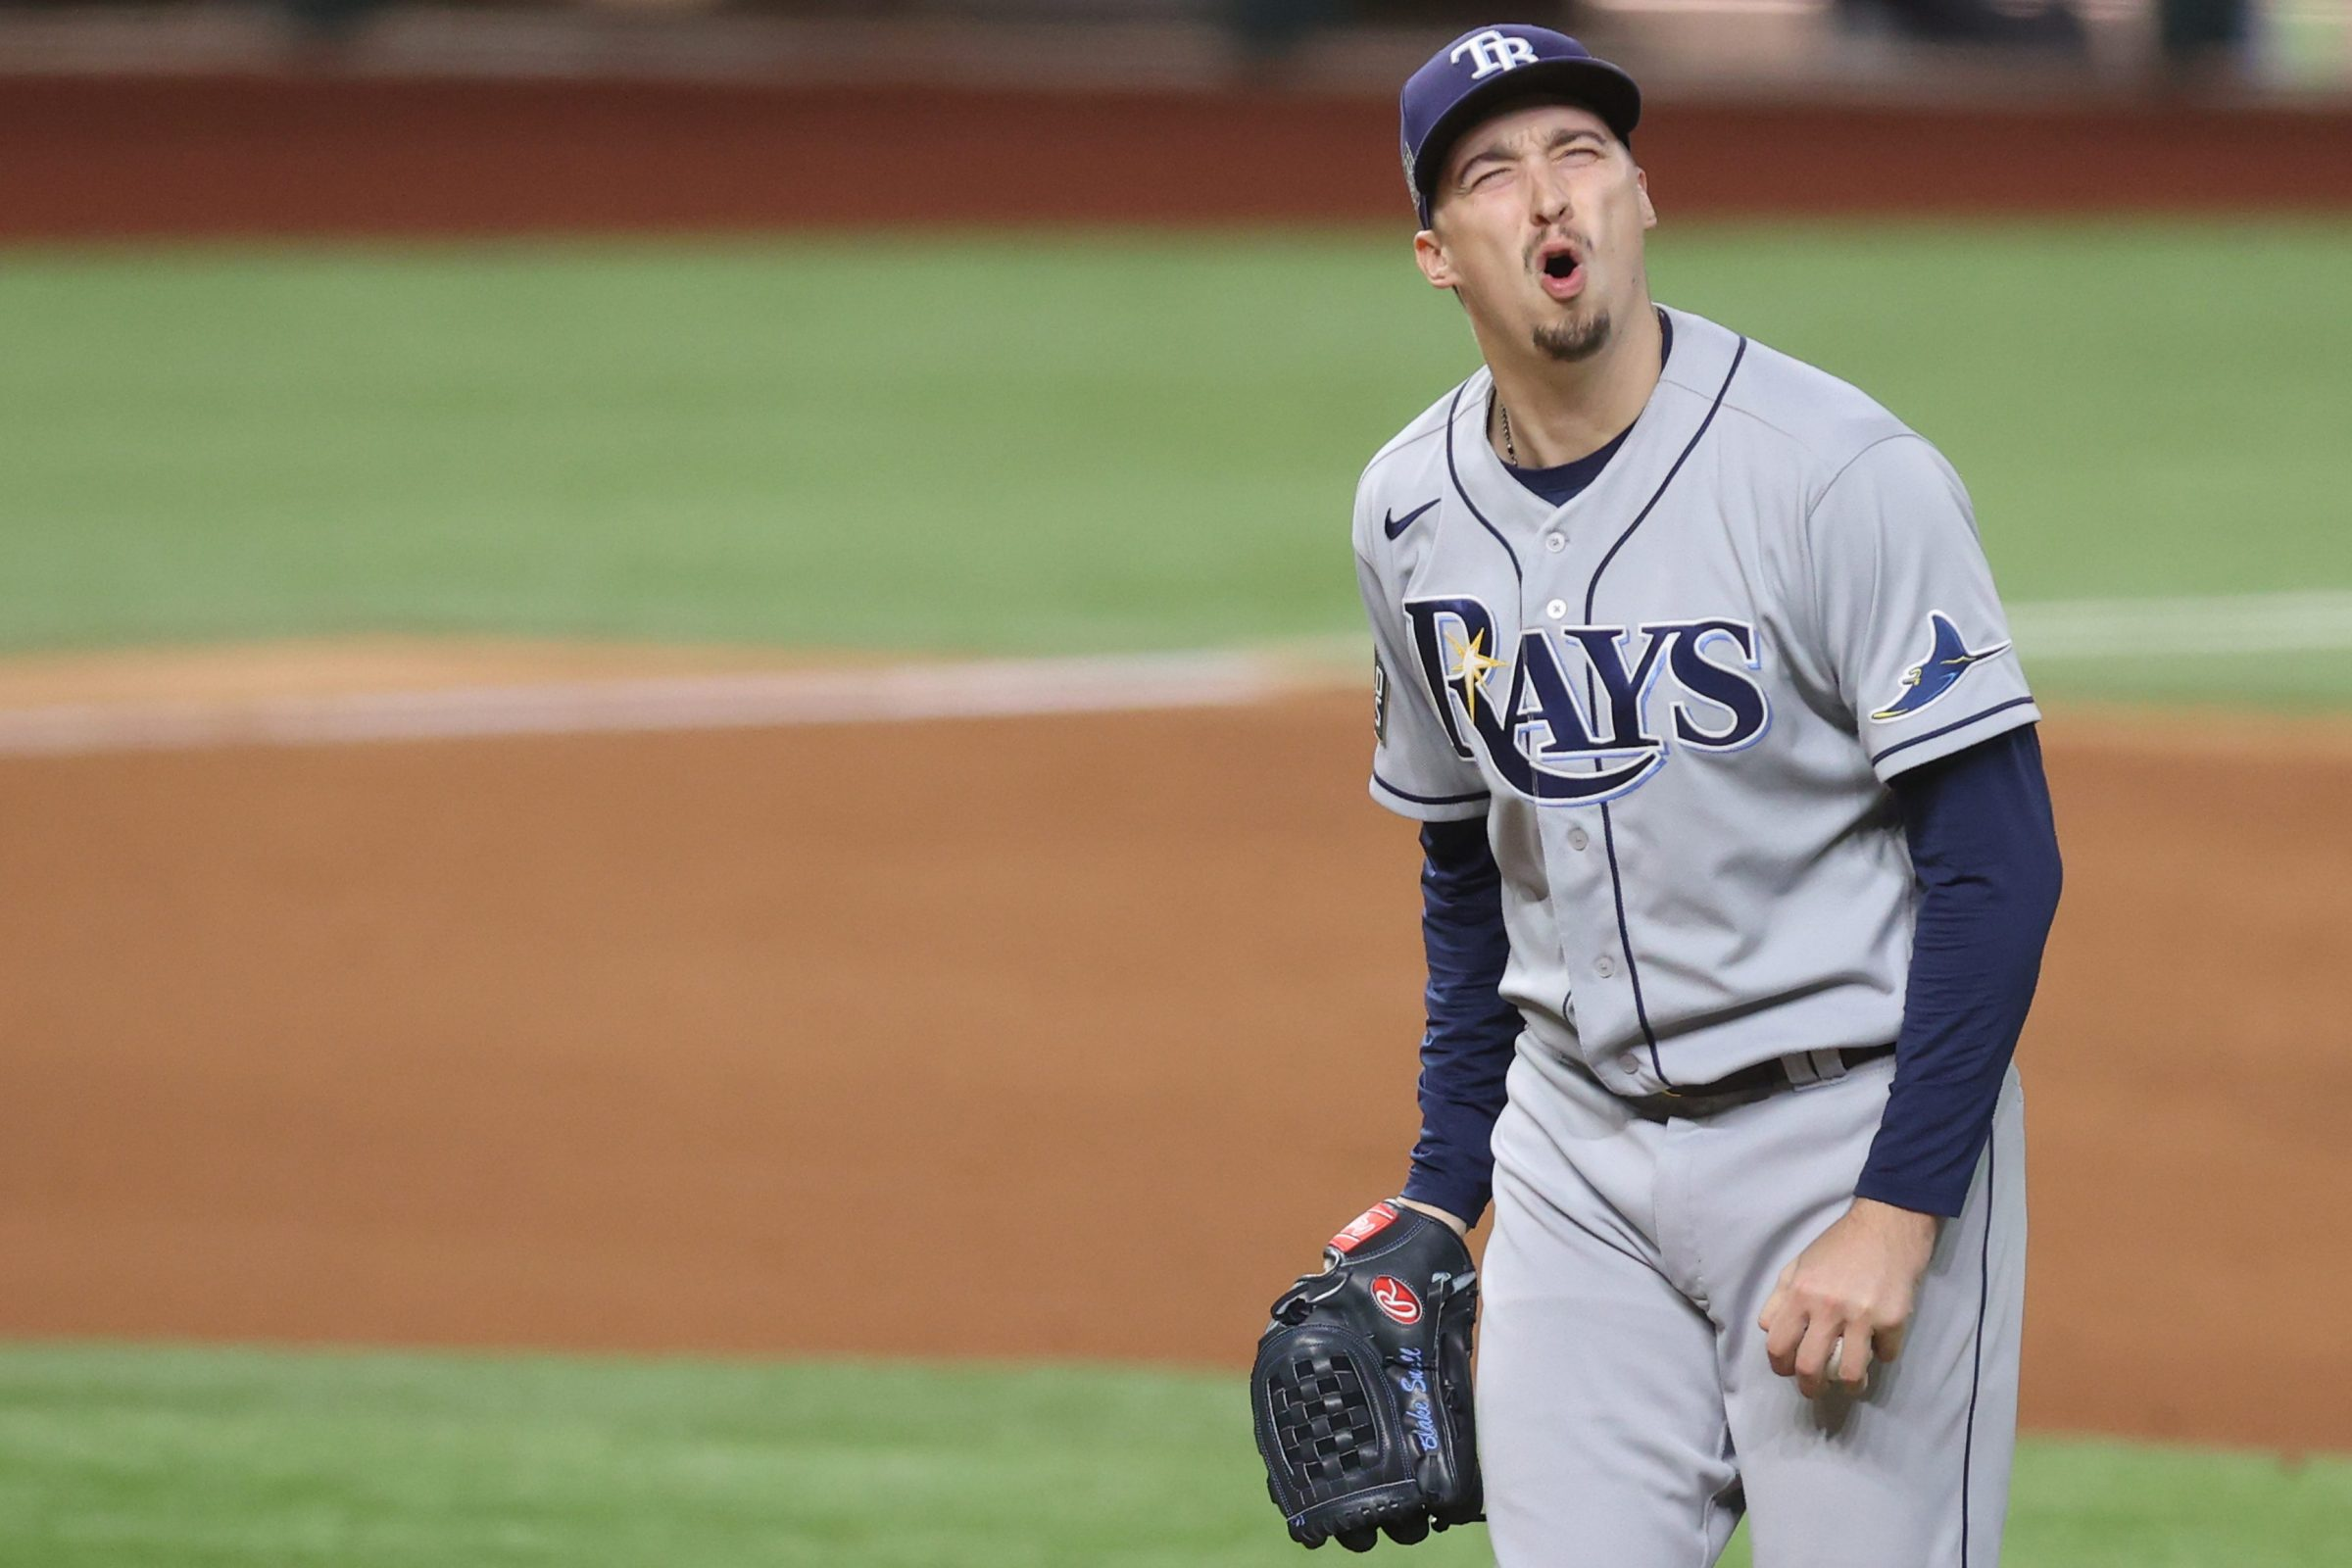 Blake Snell #4 of the Tampa Bay Rays reacts as he is being taken out of the game